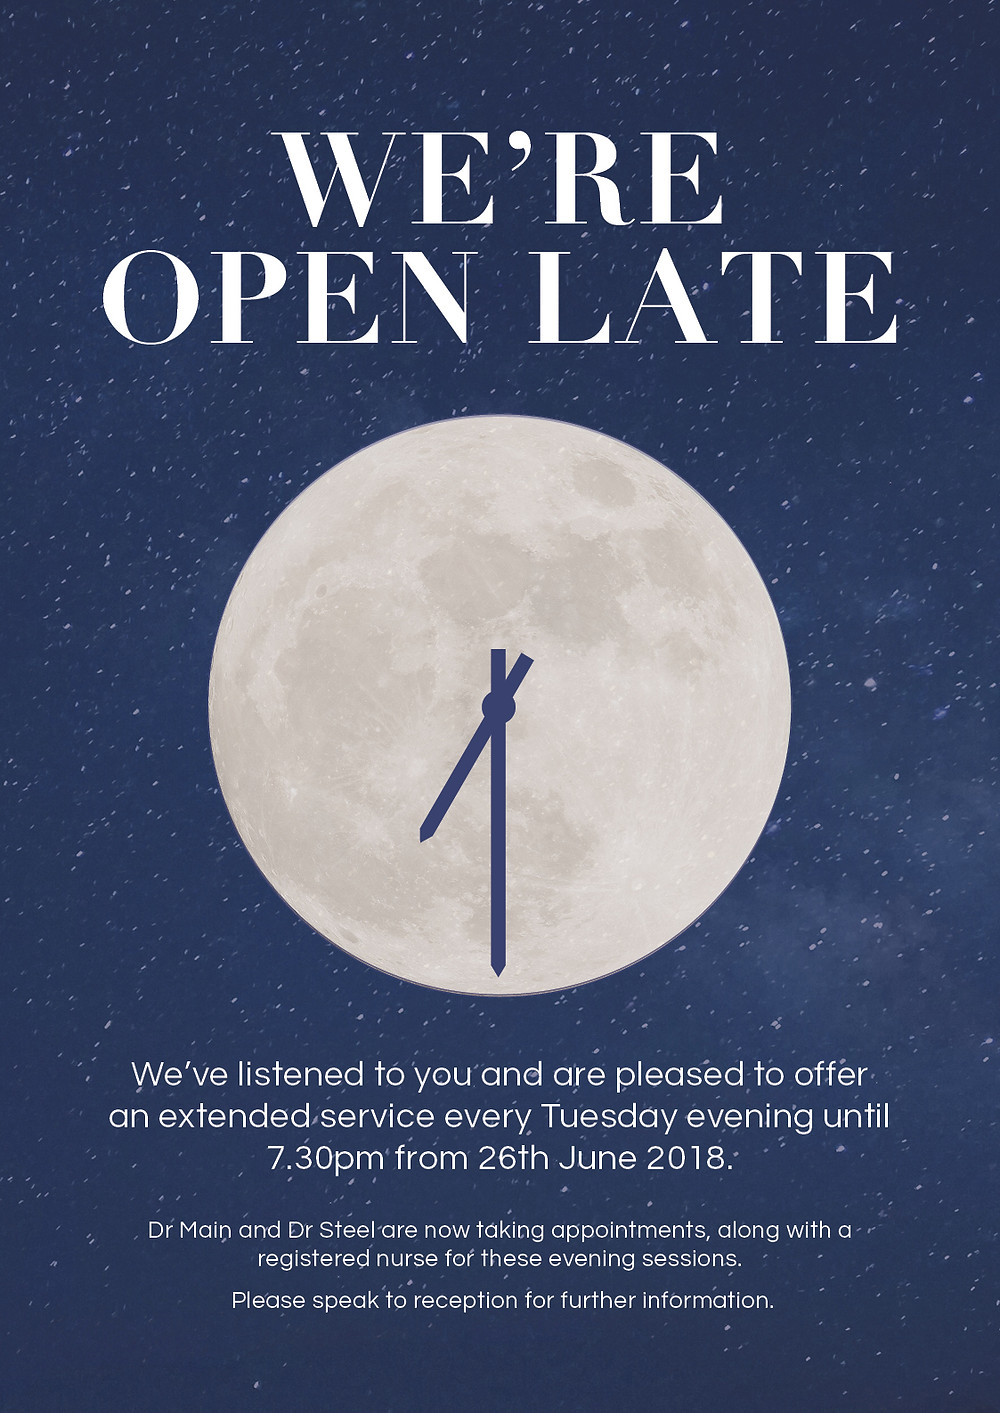 We're Now Open Late